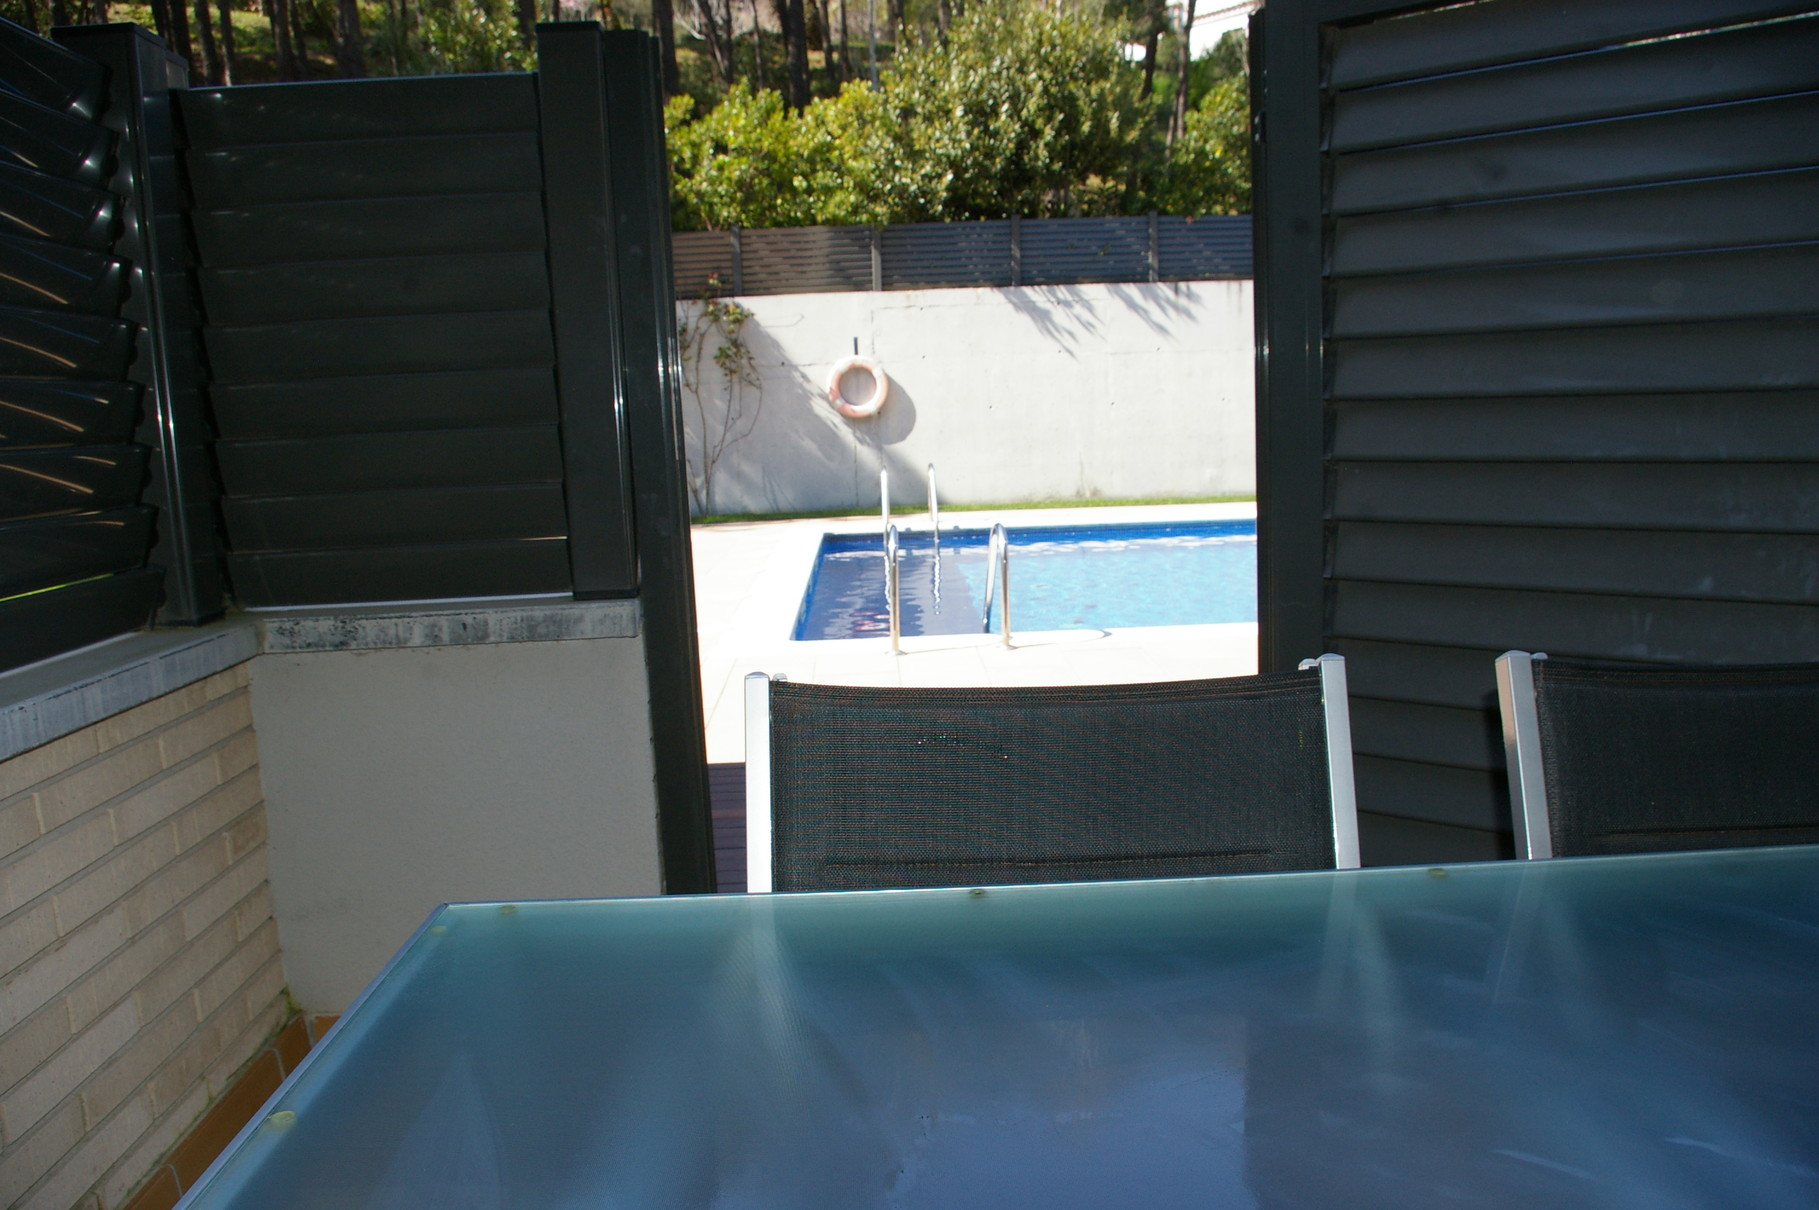 Views of the pool from the terrace